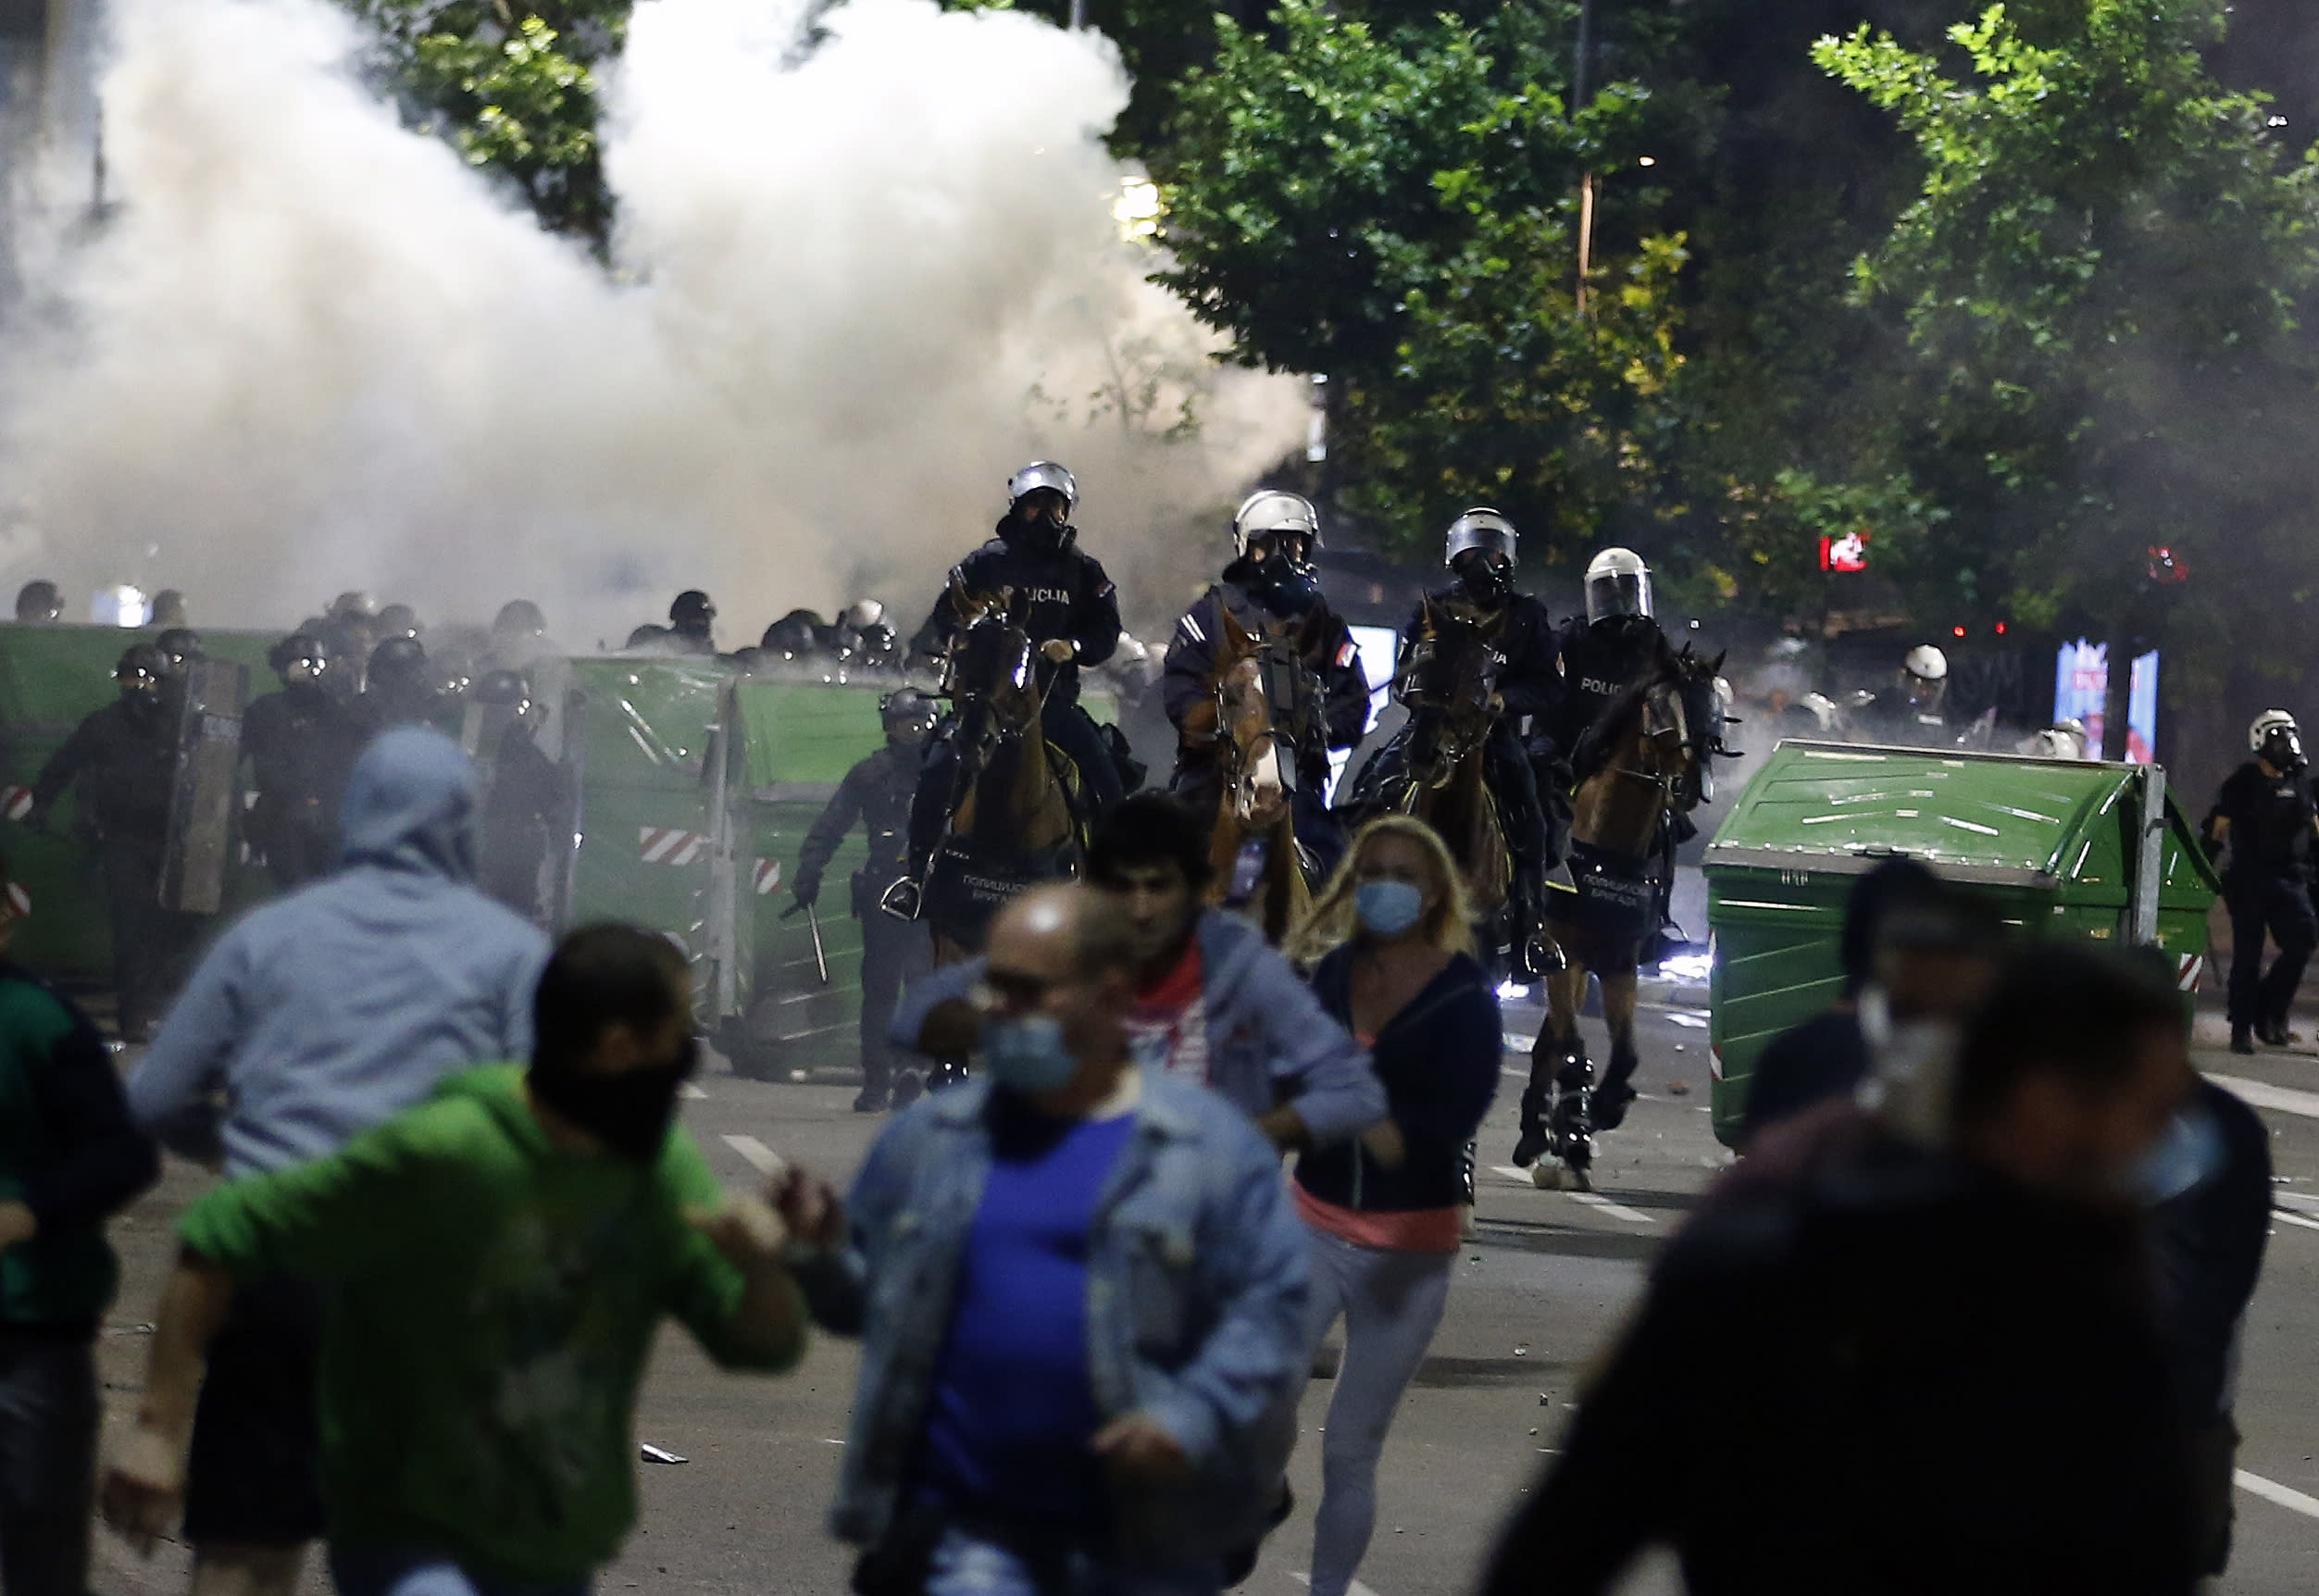 Sebian police officers disperse protesters in front of Serbian parliament building in Belgrade, Serbia, Wednesday, July 8, 2020. Thousands of people protested the Serbian president's announcement that a lockdown will be reintroduced after the Balkan country reported its highest single-day death toll from the coronavirus Tuesday. (AP Photo/Darko Vojinovic)